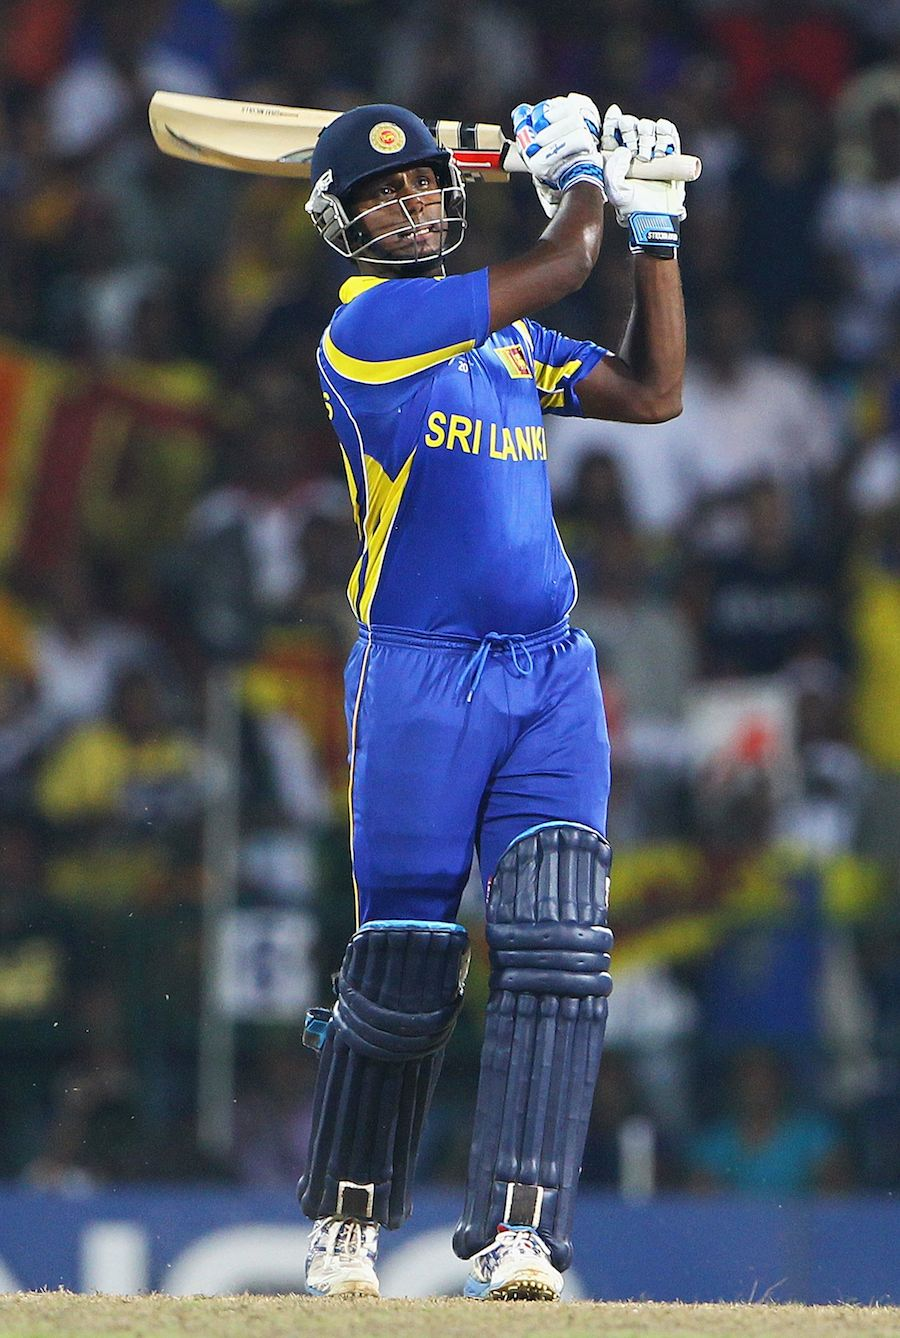 Angelo Mathews Wallpapers - Cricket Live Scores, Cricket ...